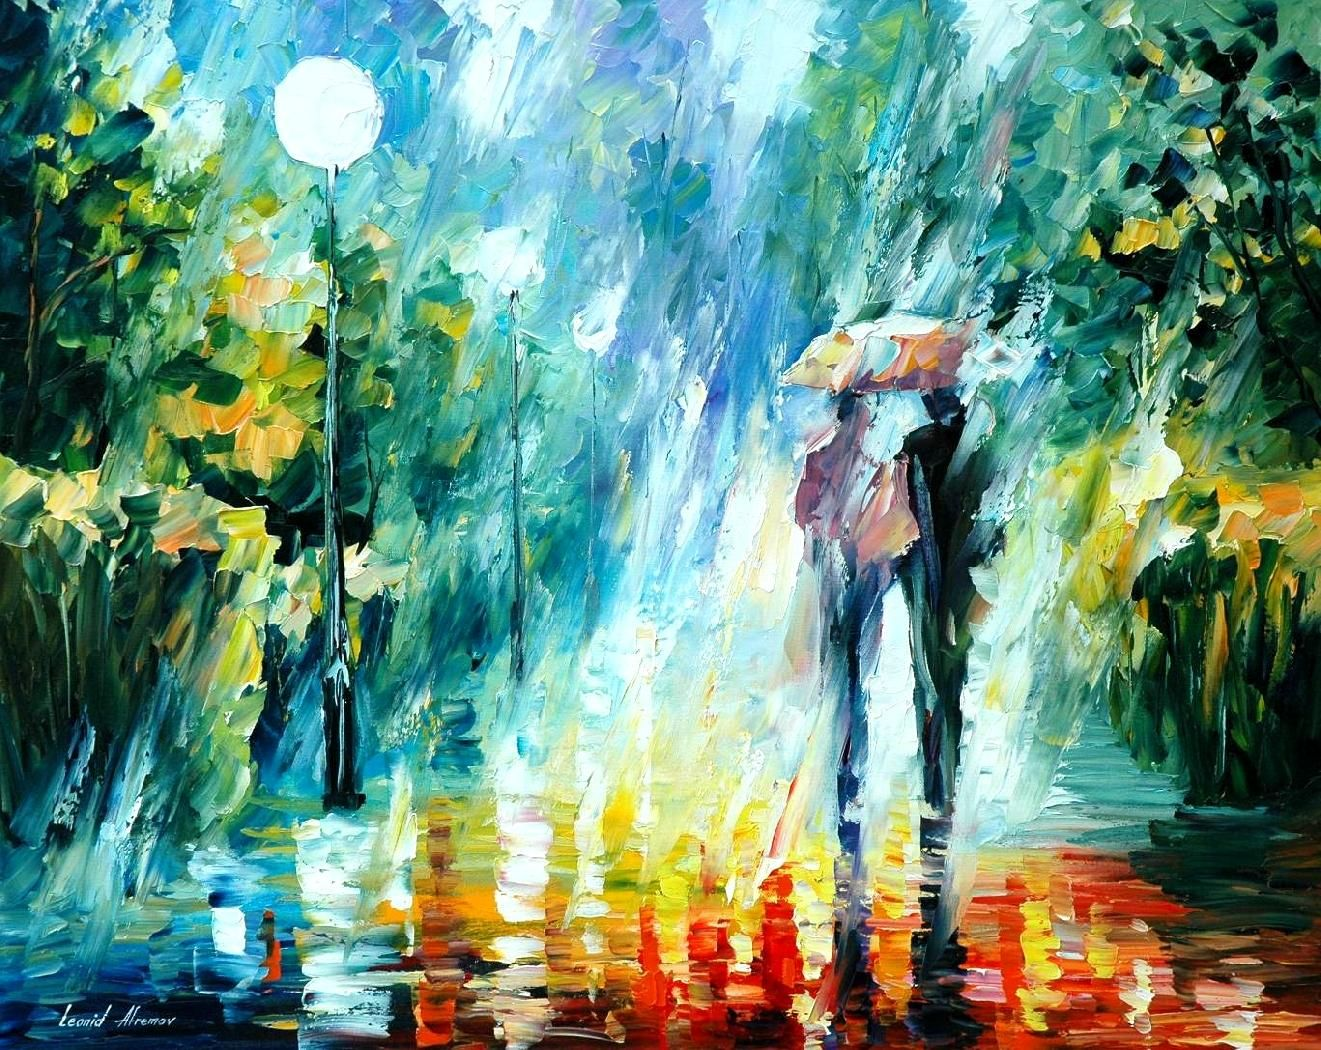 Oil Paintings Images